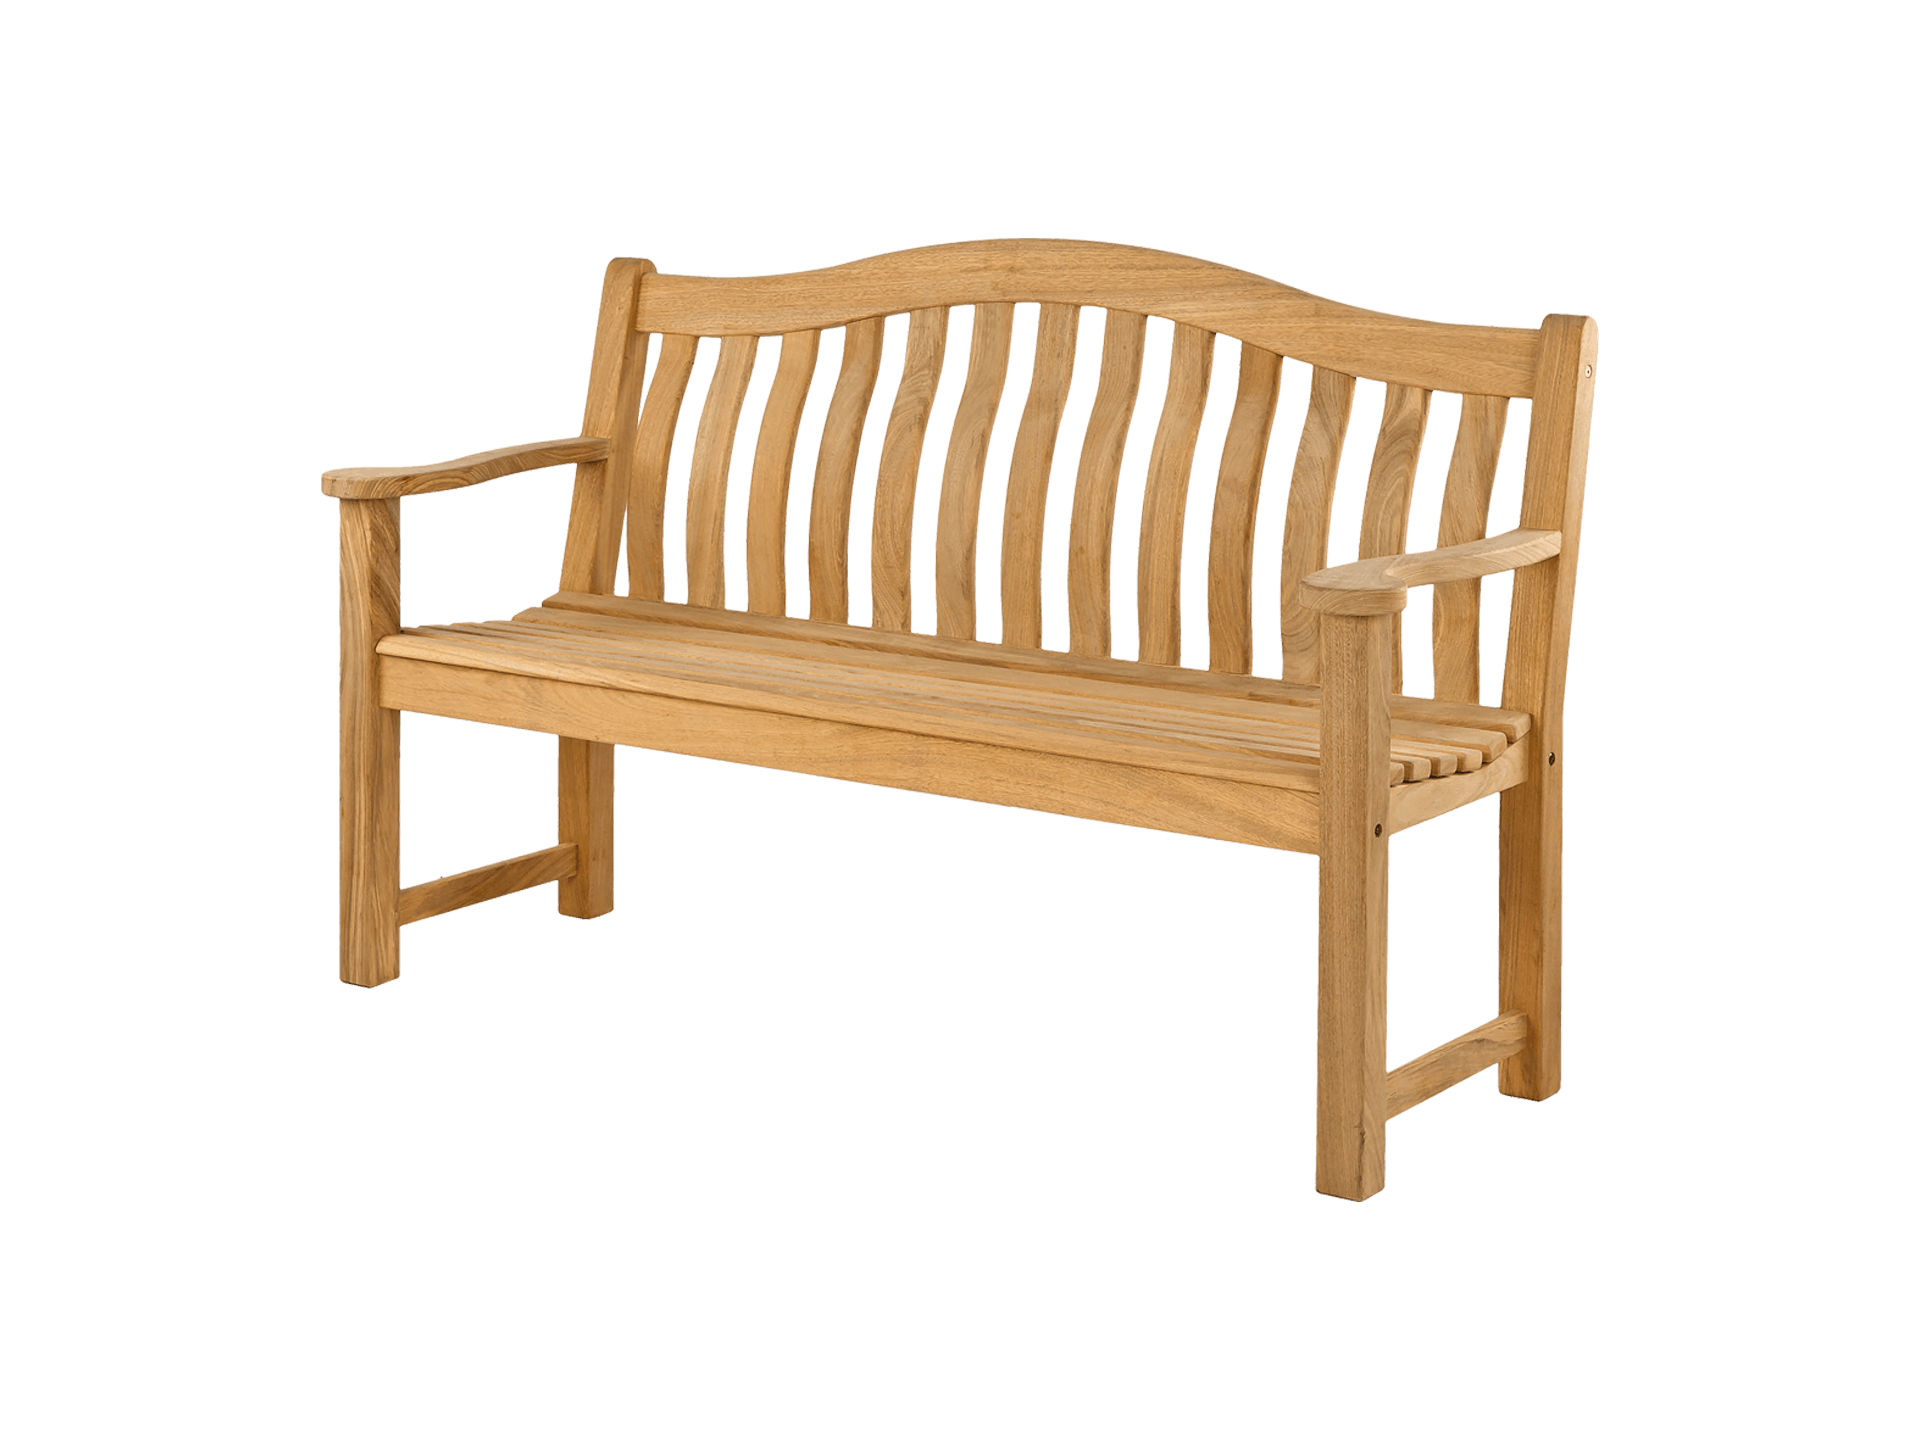 Turnberry Bench 5ft - Jensen Leisure Furniture